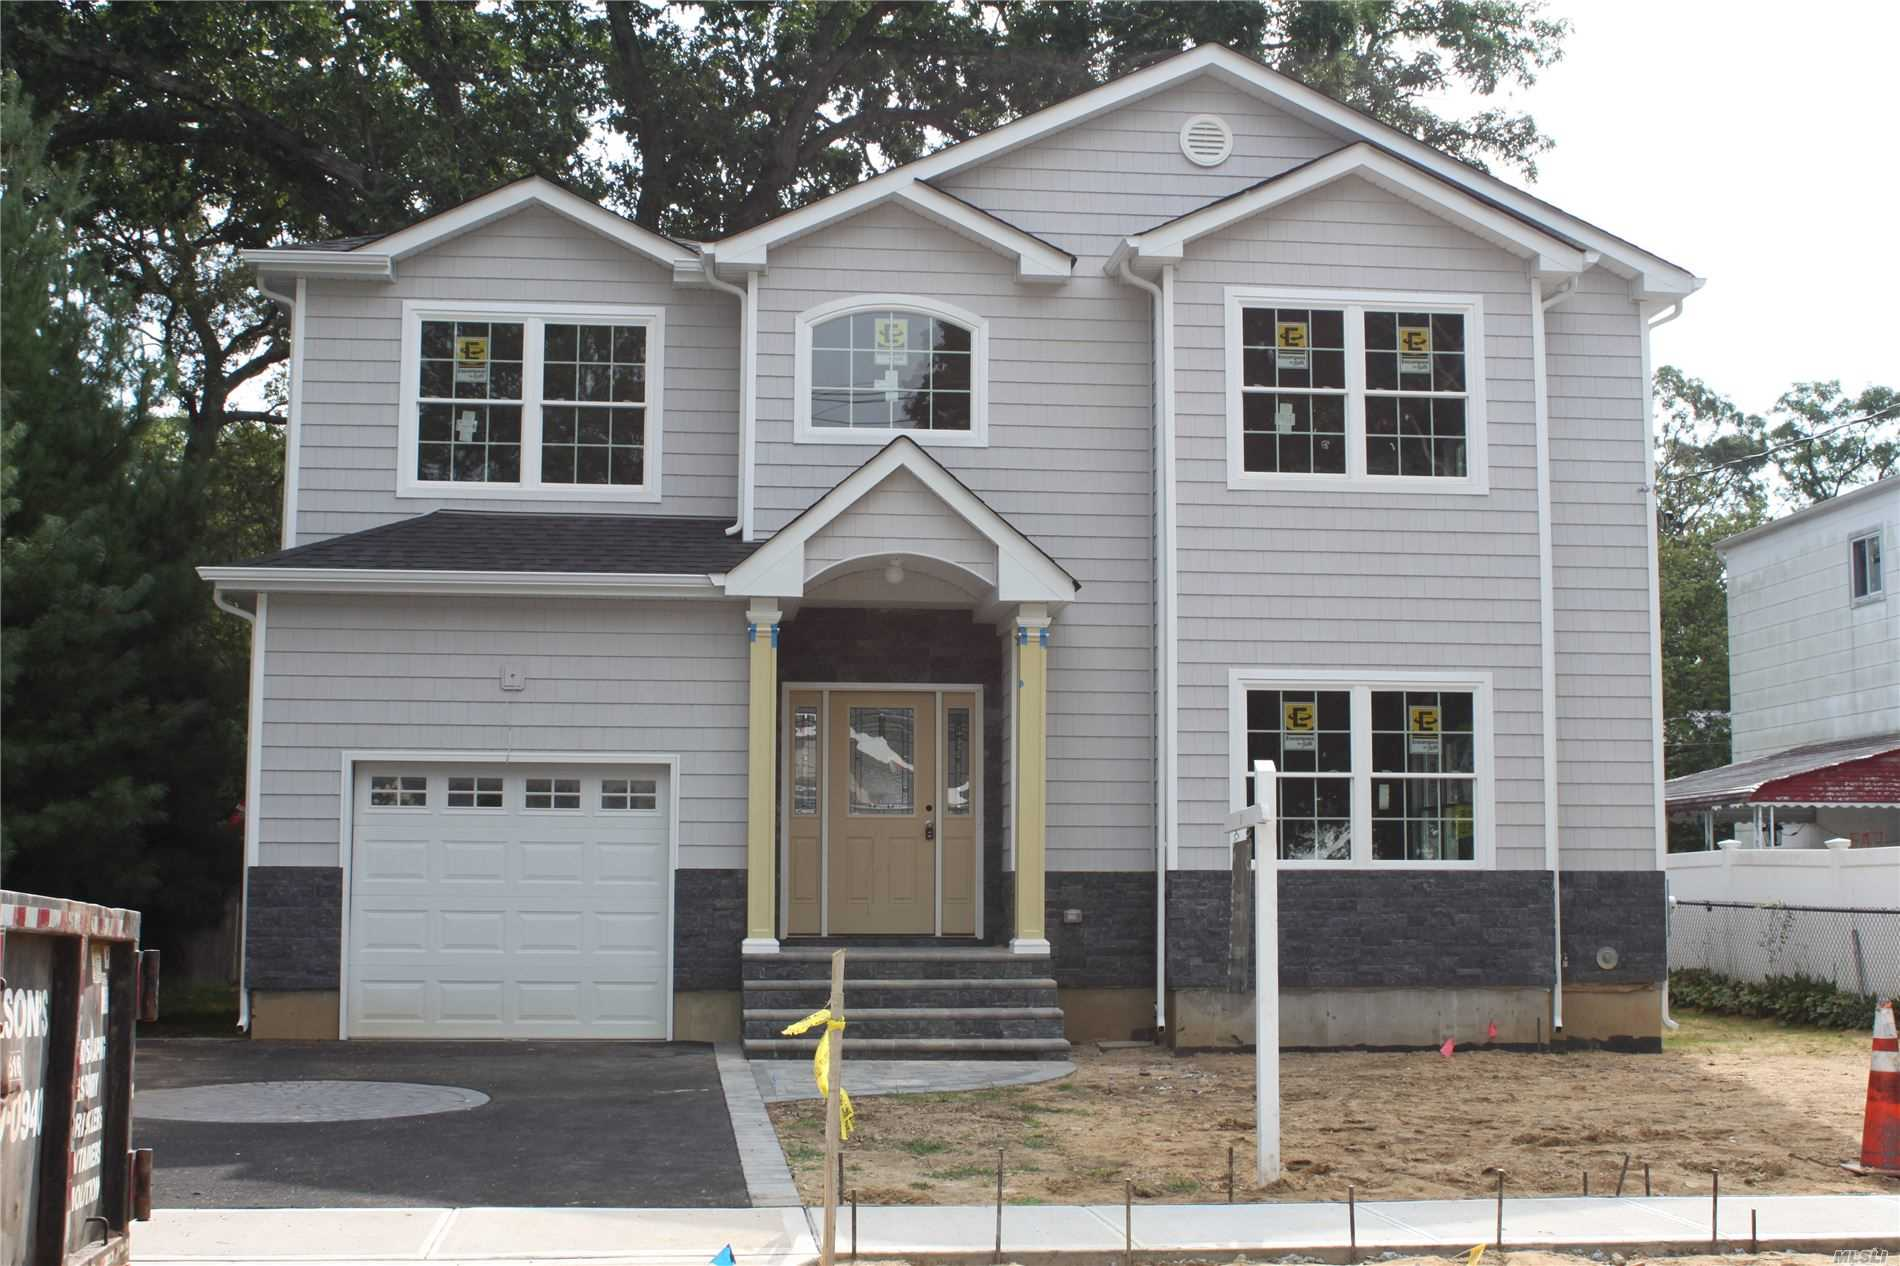 New Construction To Be Built In 2019. 4 Bedrooms, 2 1/2 Bath Custom Colonial, Pella Windows, Oak Floors, Crown Molding , Central Vac, Full 8' Basement... Still Time To Pick Your Finishes.